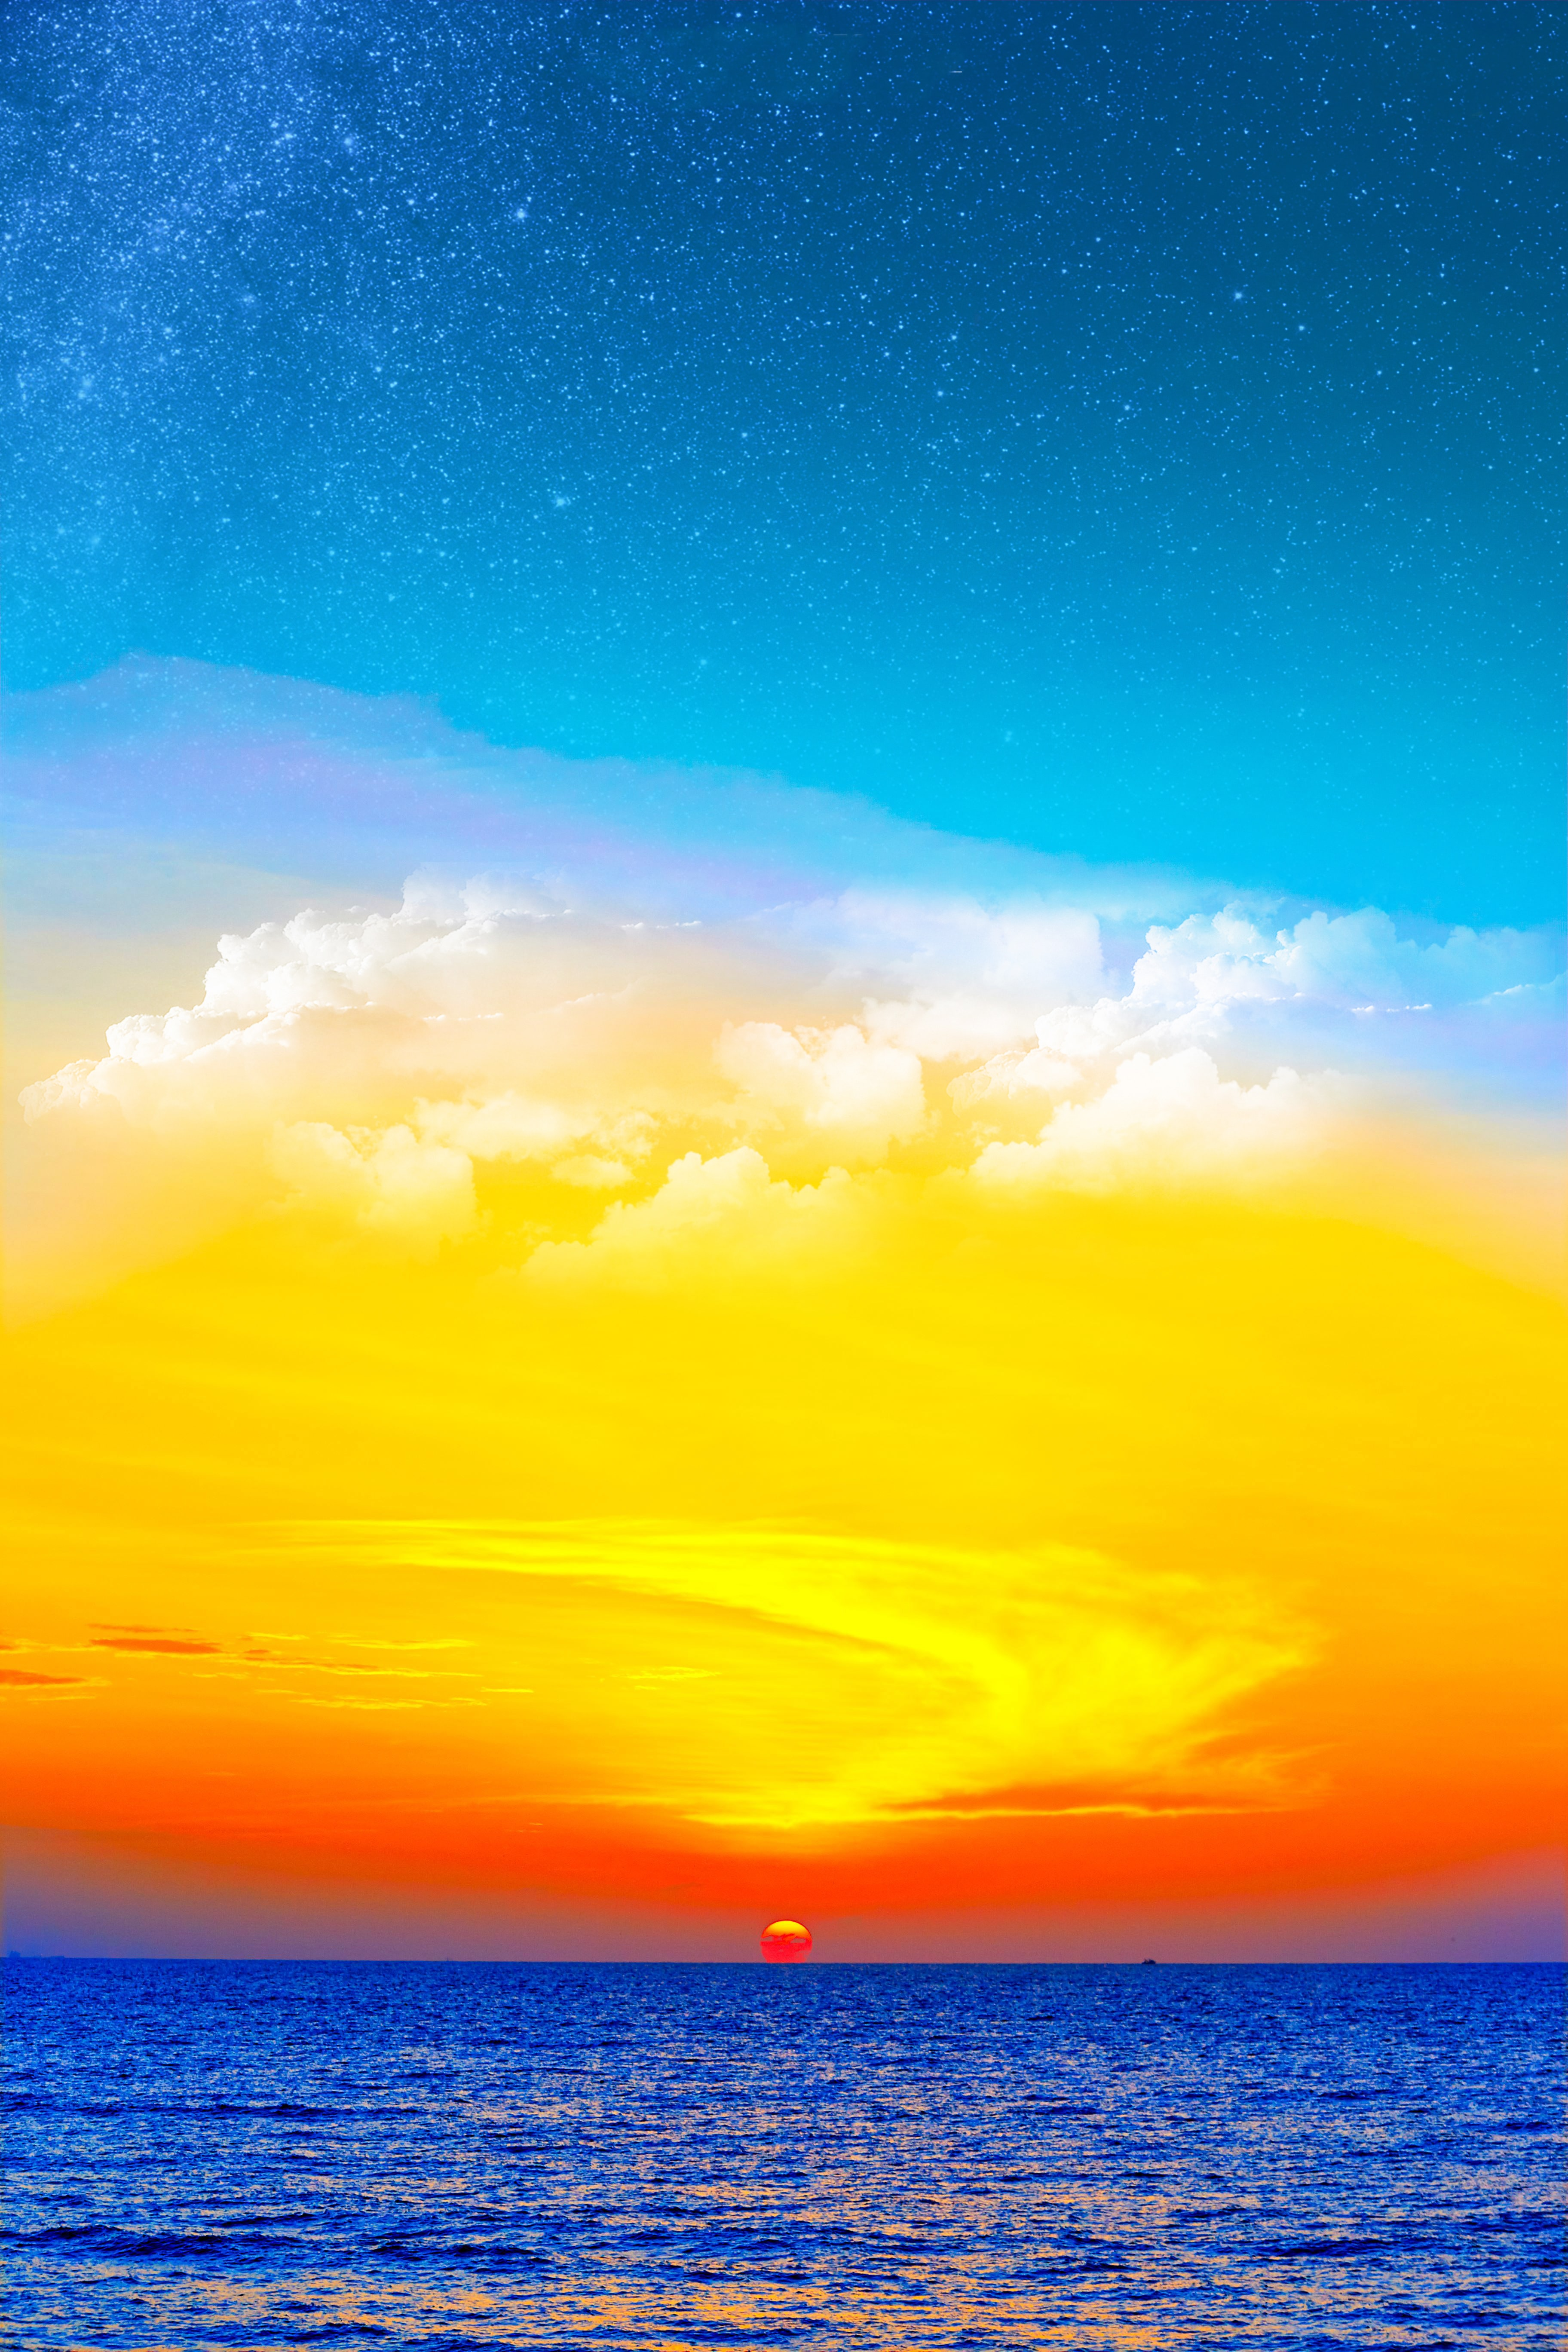 blue sea under blue, white, and orange sky during sunset digital wallpaper